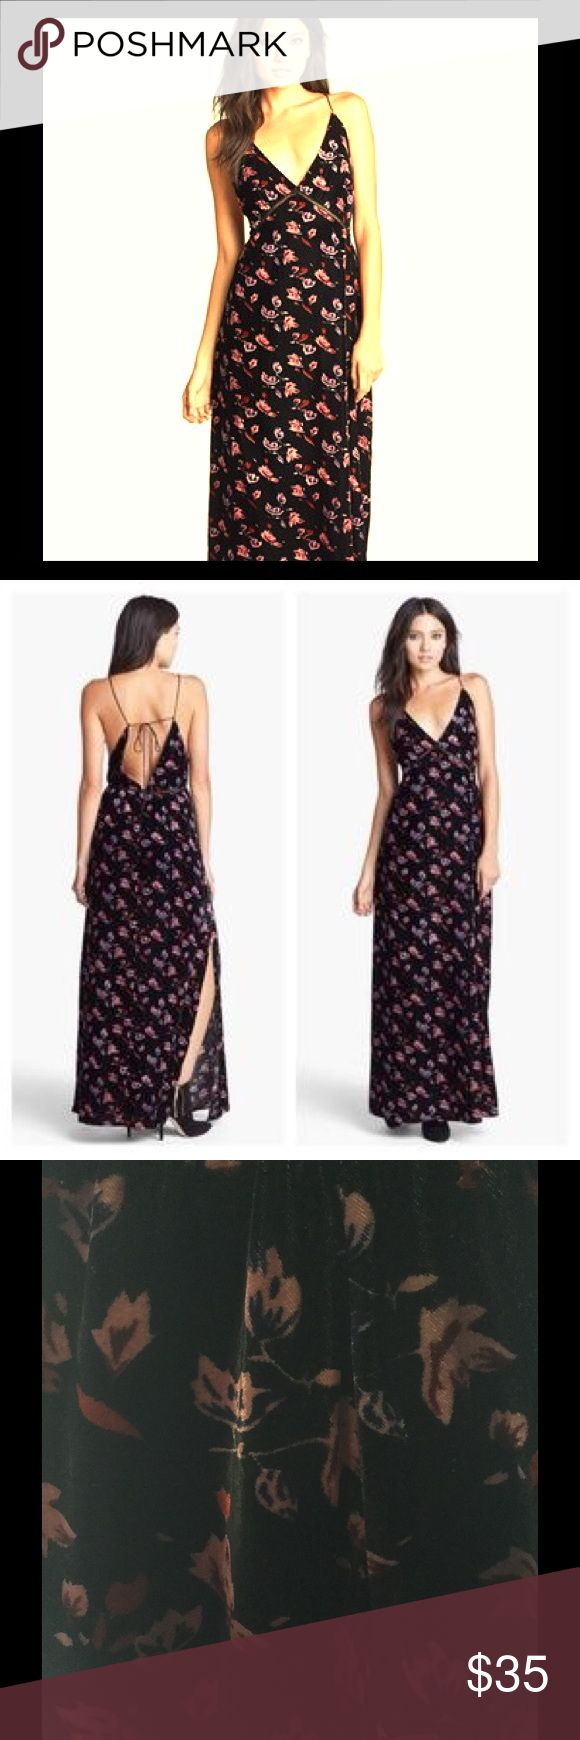 Like Mynded velvet maxi dress! Floral print! The best festival dress! Looks good on everyone! Lovely back detail and medium- high side slit. Hard to let this one go! I refuse to be a walking synonym and be seen in the same dress twice. Lol 😂 a truly unique piece. Purchased at the Nordstrom Rack Store. Velvet materiel. Like Mynded Nordstrom Dresses Maxi